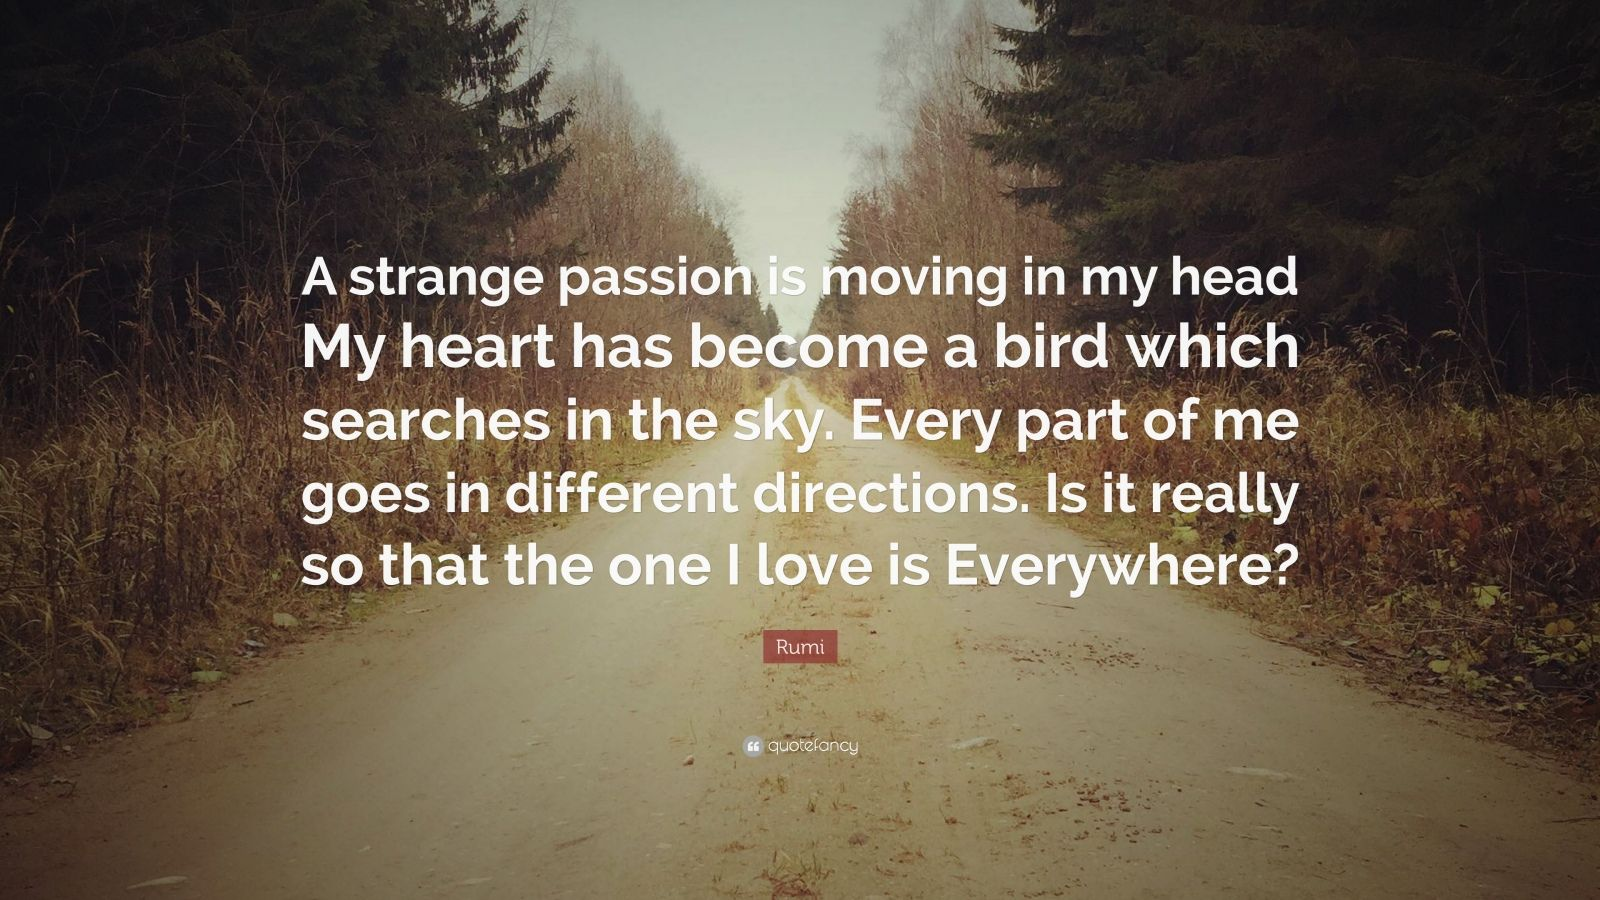 """Rumi Quote: """"A strange passion is moving in my head My heart has become a bird which searches in the sky. Every part of me goes in different directions. Is it really so that the one I love is Everywhere?"""""""